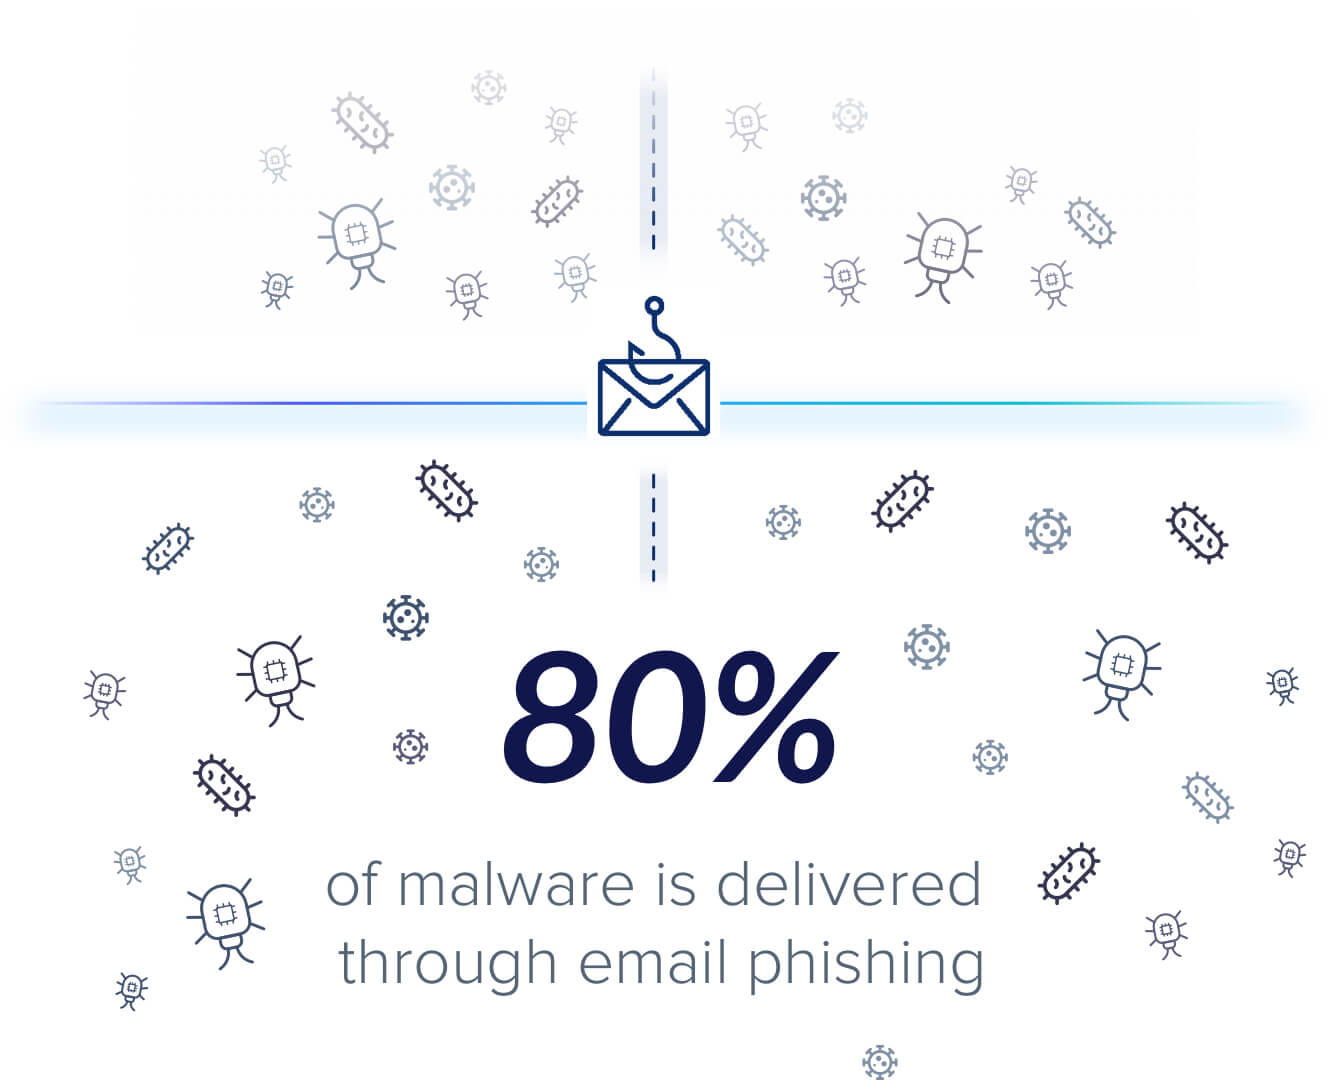 Email is essential but vulnerable